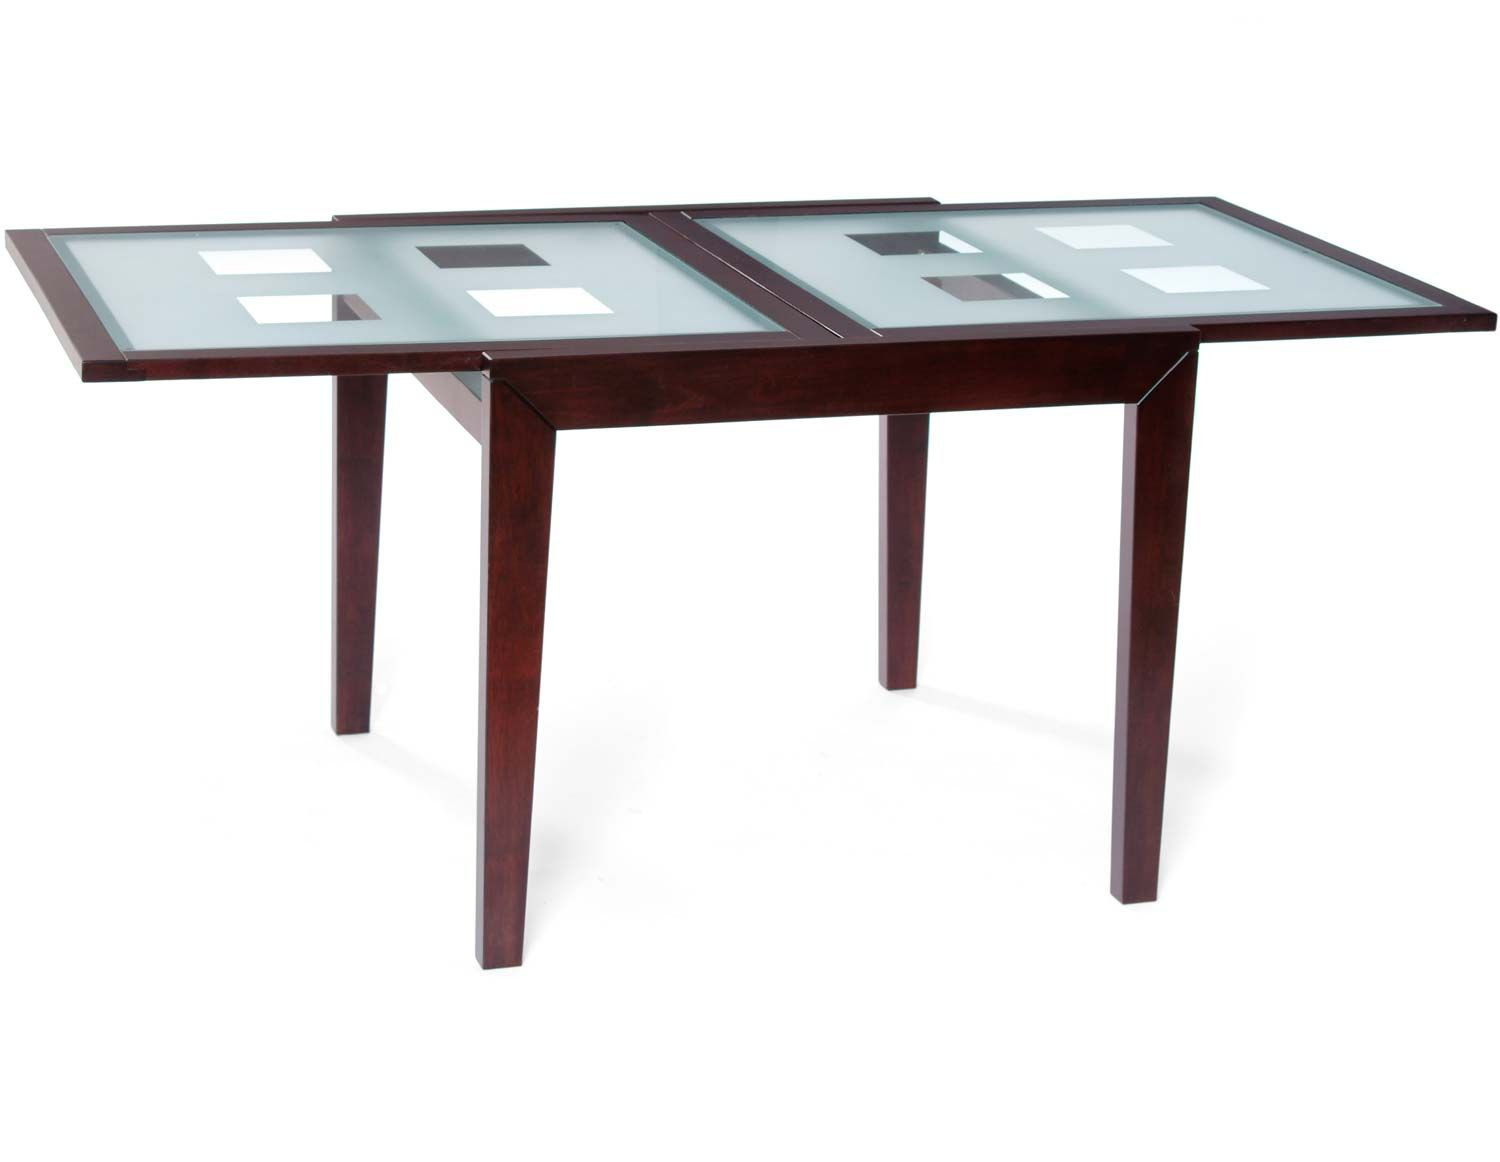 Structube Catalogue Dining Room Tables Tivoli Expresso Extendable Glass Dining Table Dining Dining Room